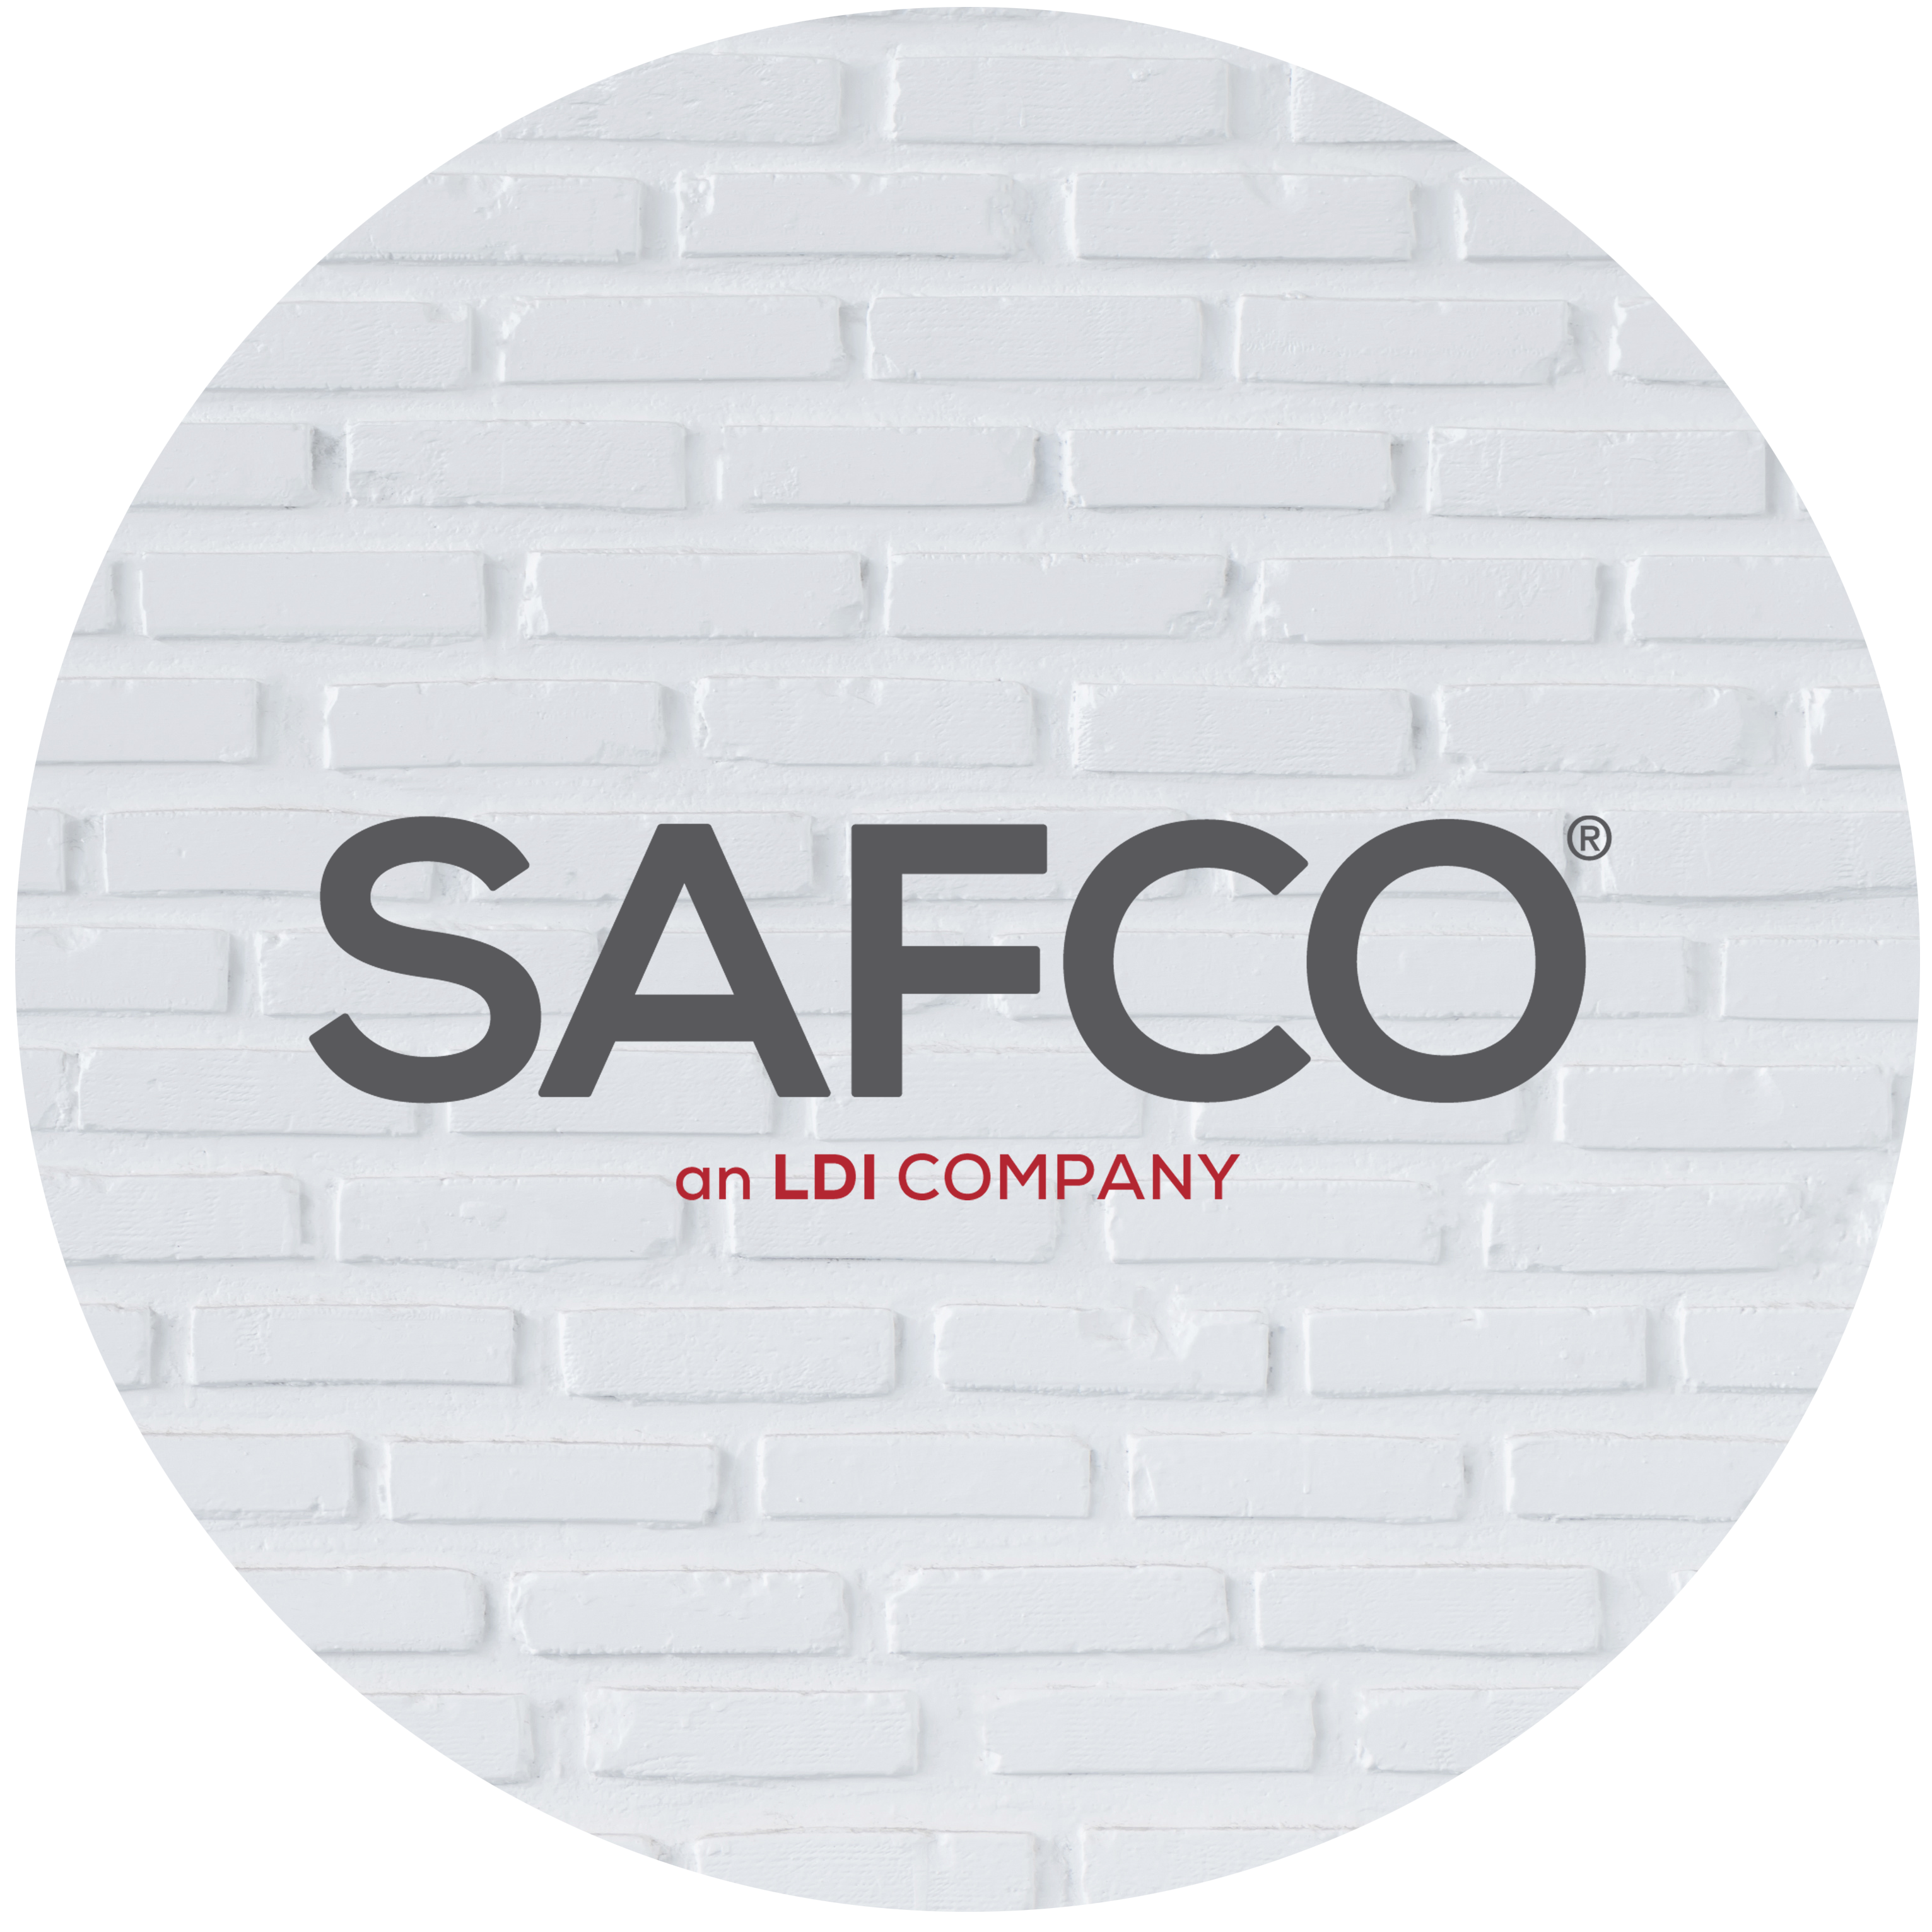 Safco Distribution East Coast